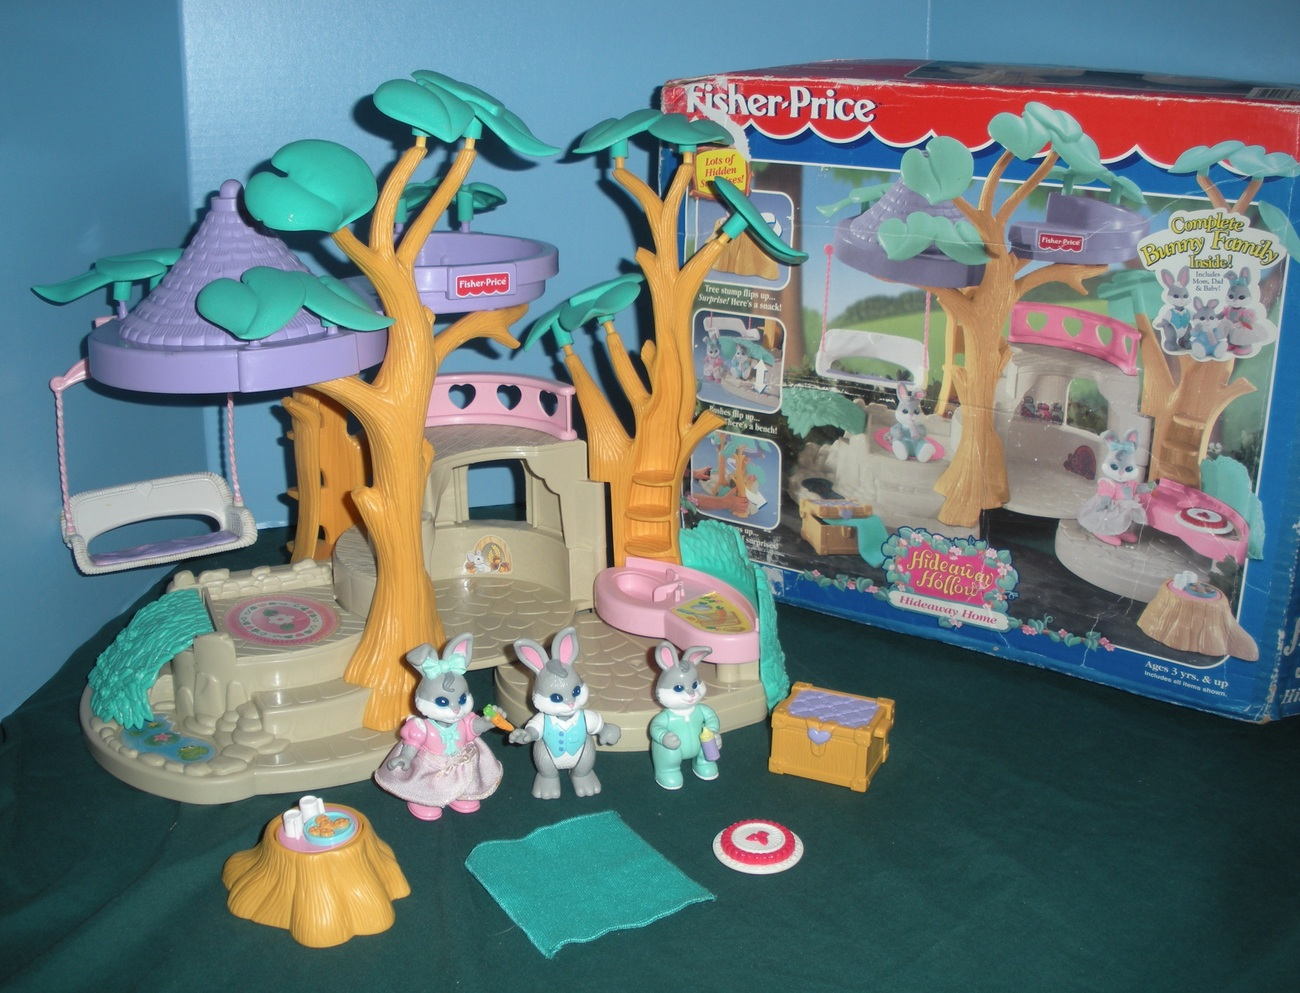 Home Play Toys : Vintage fisher price hideaway hollow bunny home